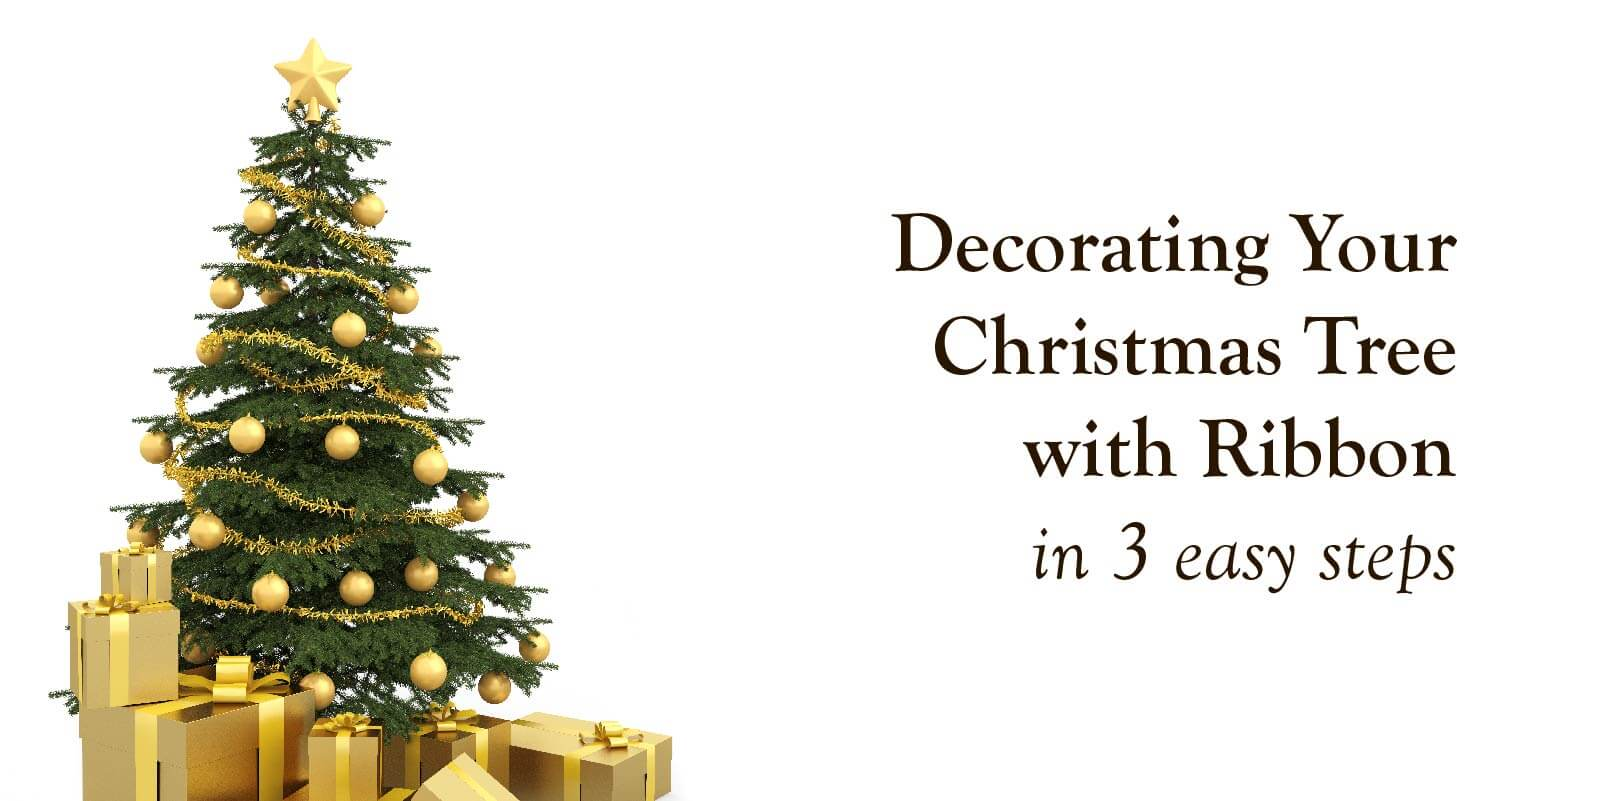 Decorating Your Christmas Tree with Ribbon